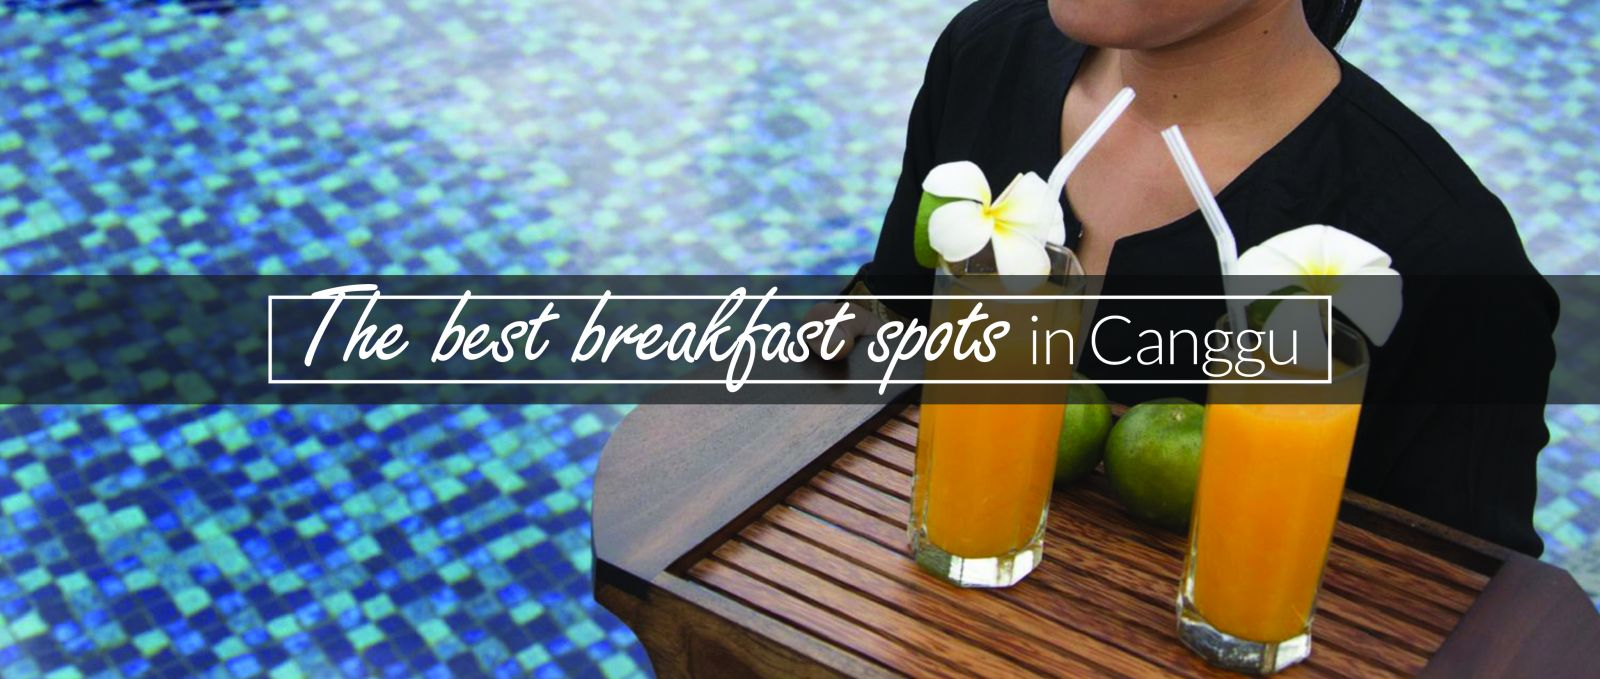 best breakfast spots in canggu